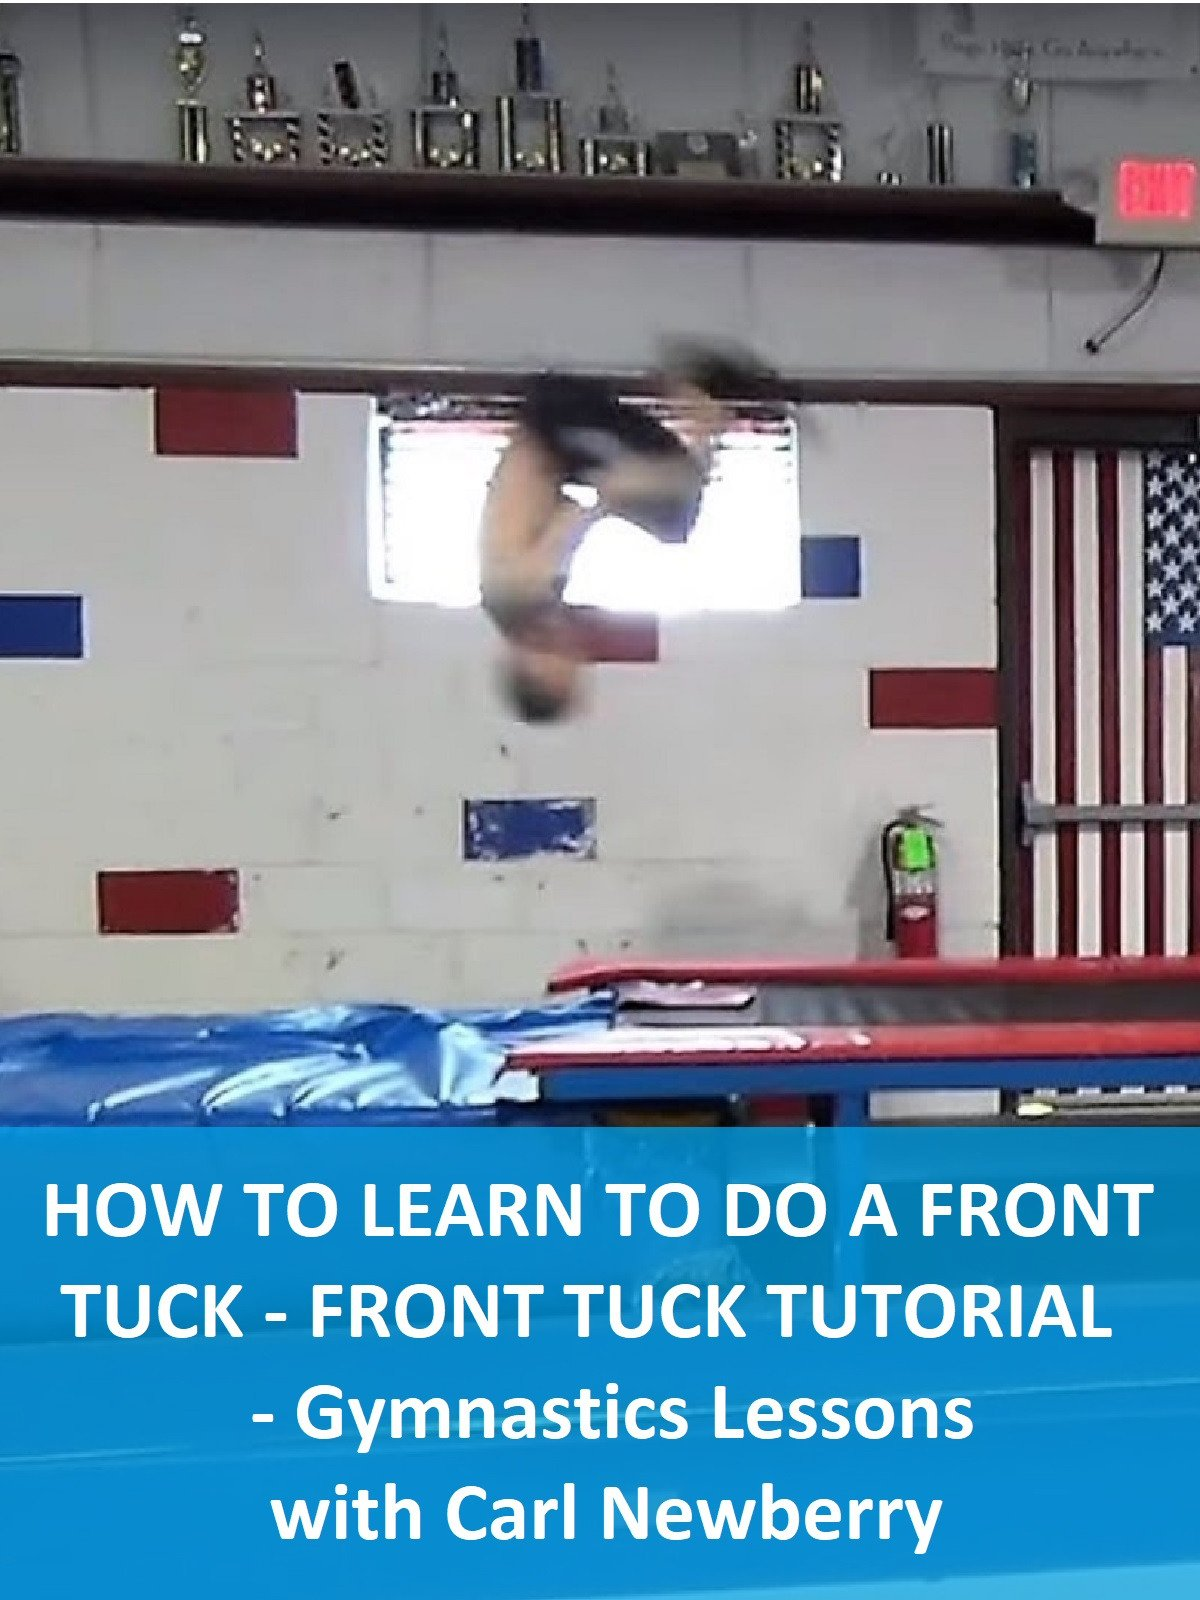 How To Learn To Do a Front Tuck